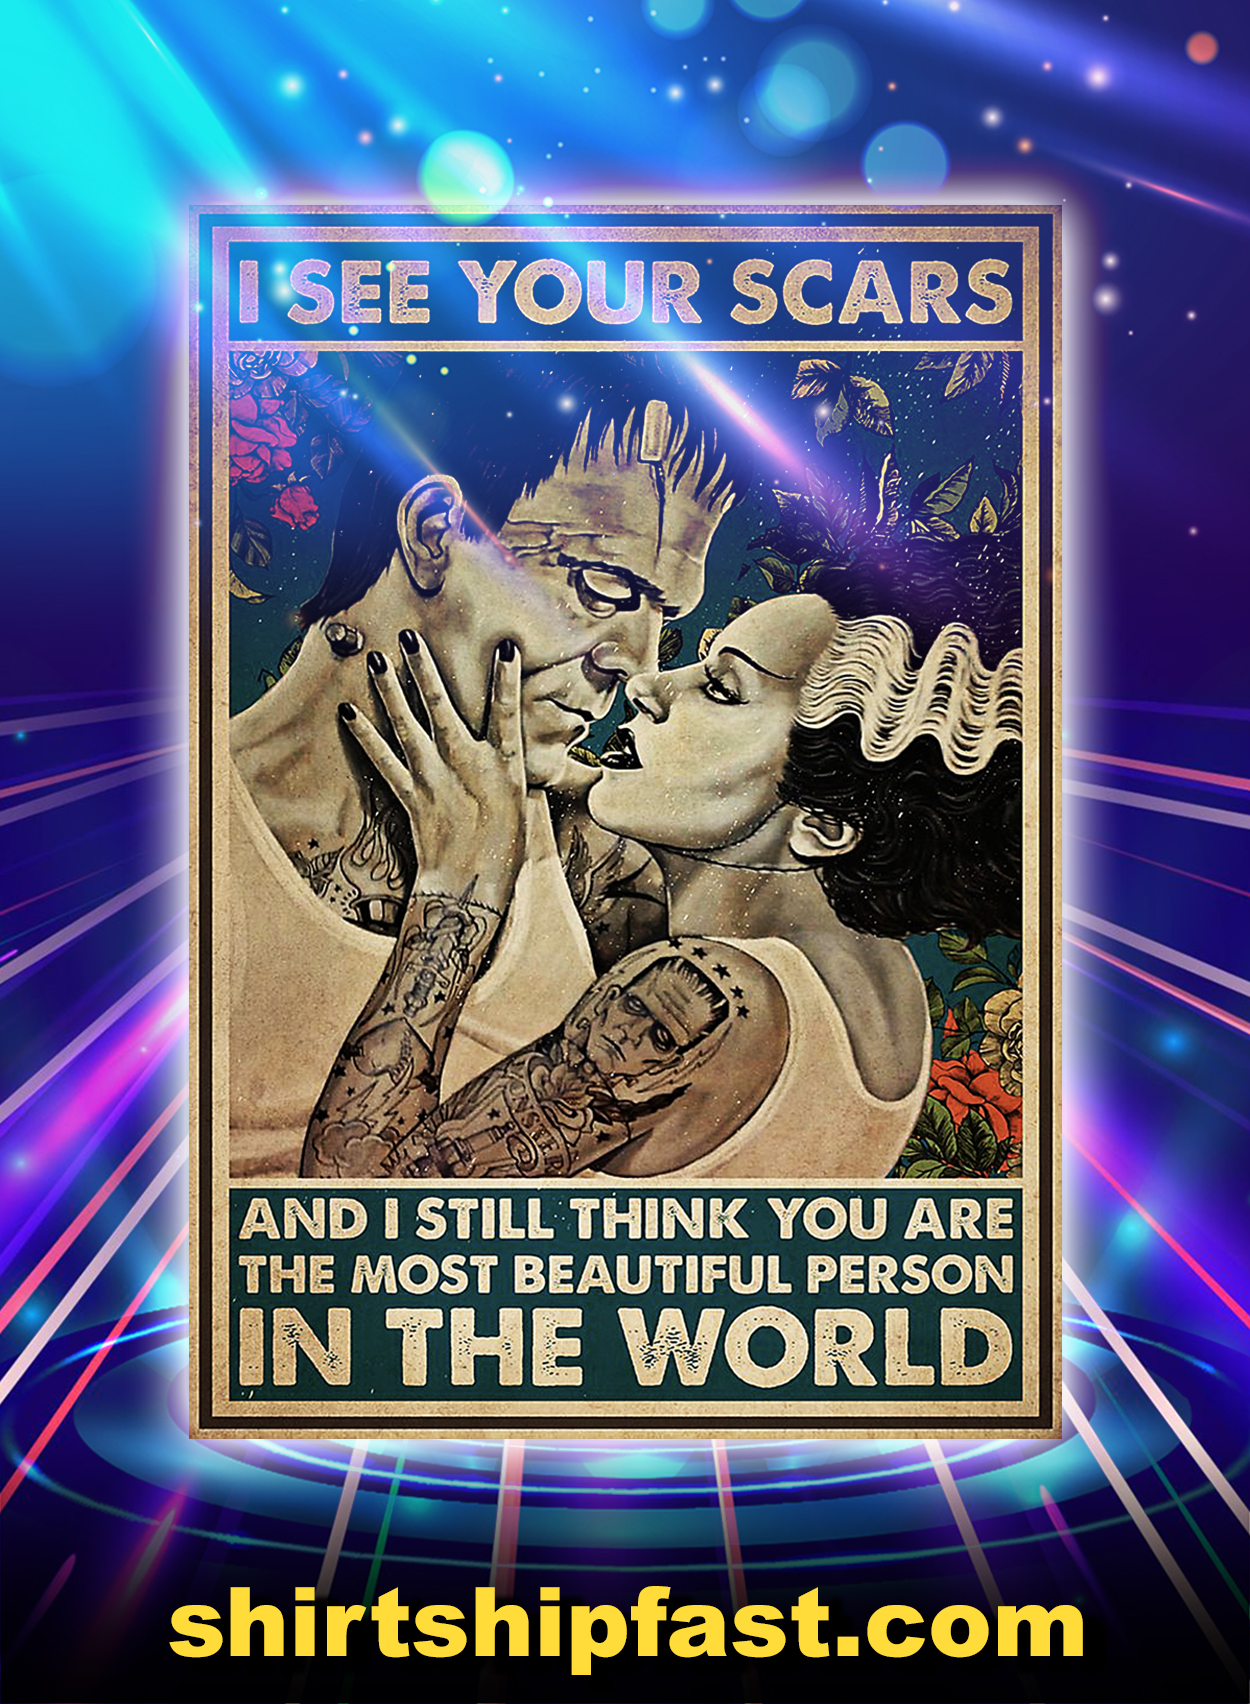 Frankenstein and bride I see your scars poster - A2